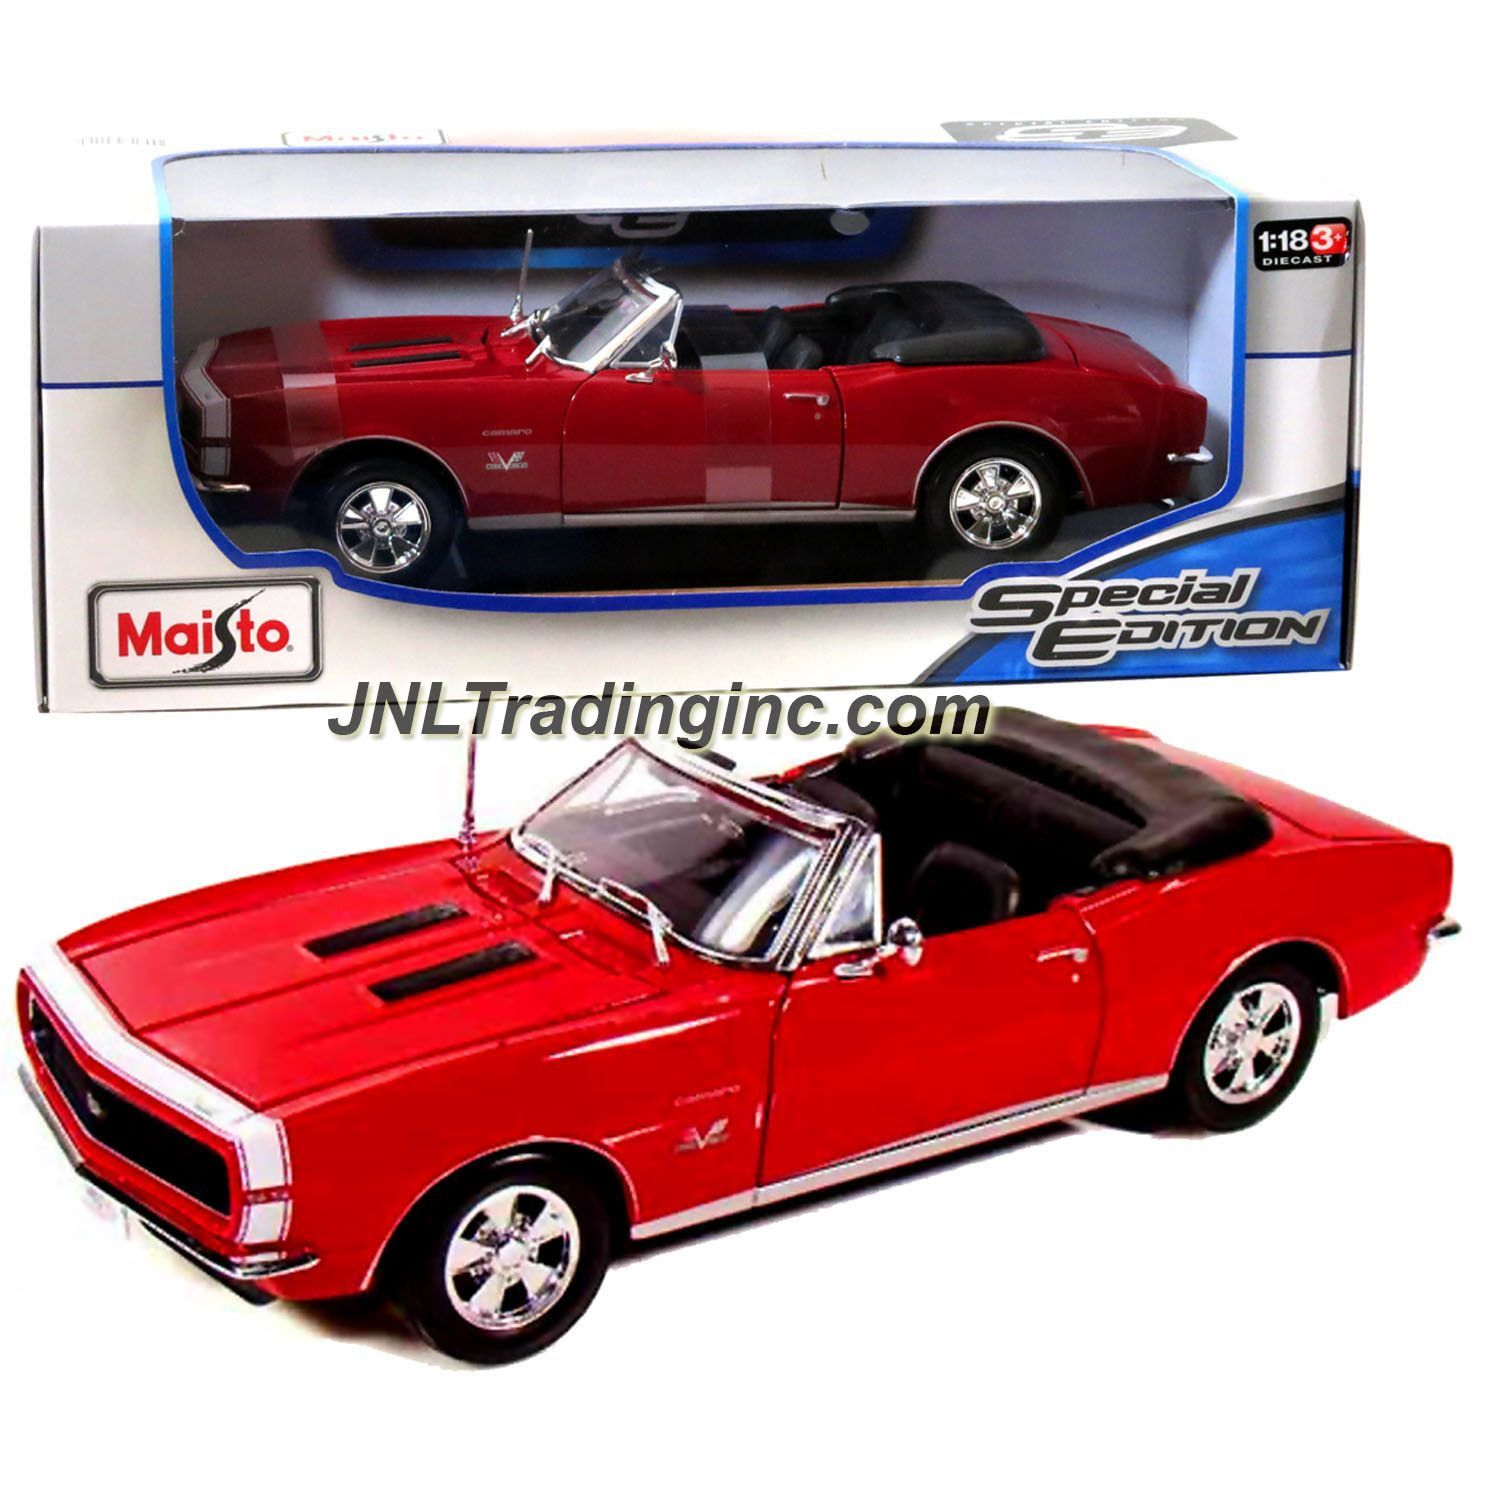 Maisto special edition series 1 18 scale die cast car red classic roadster 1967